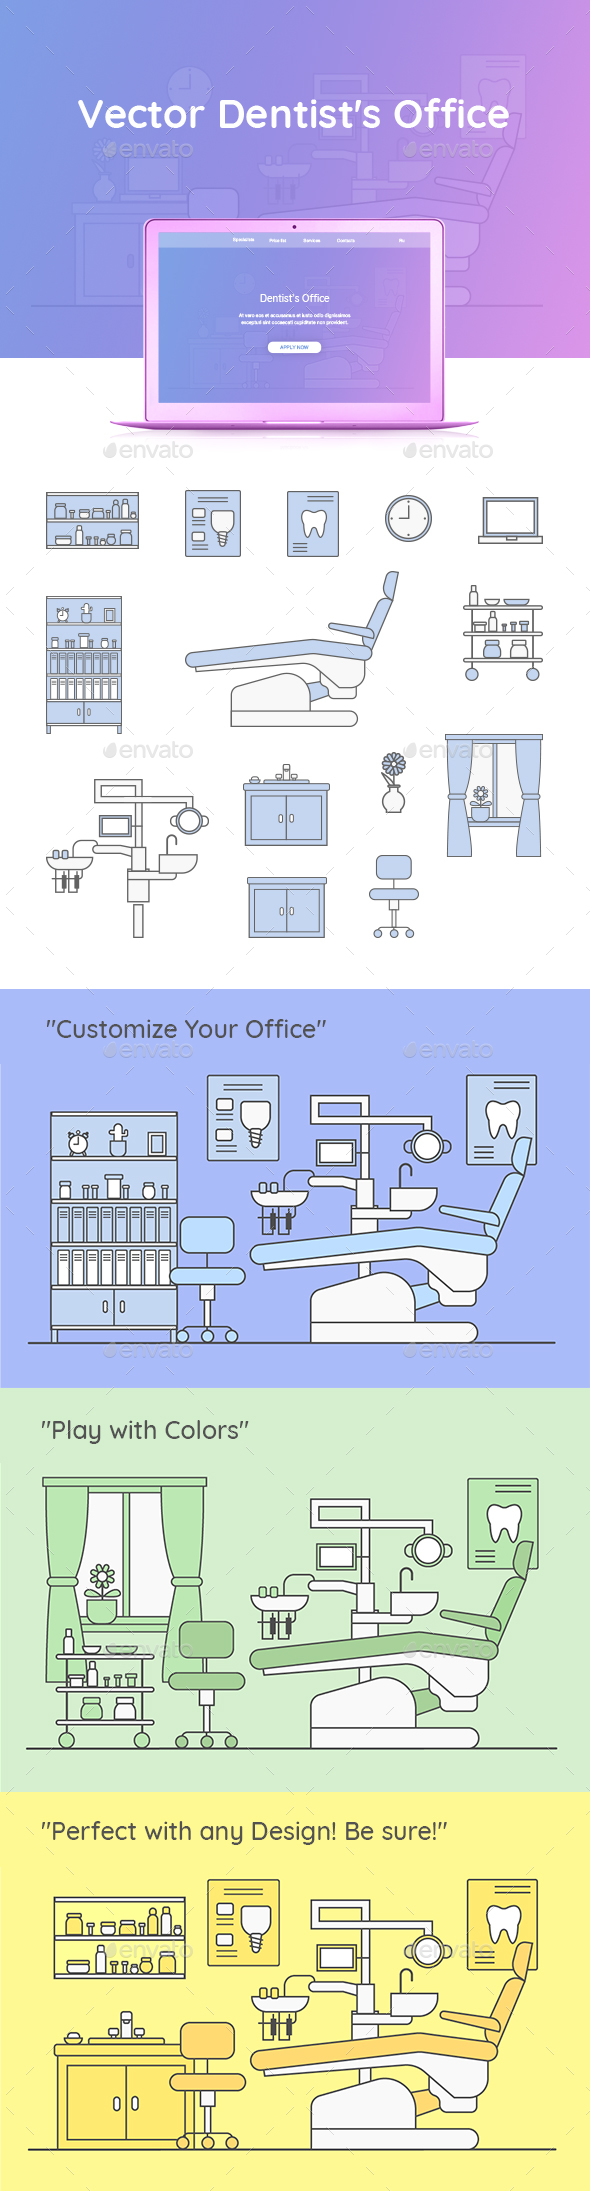 GraphicRiver Vector Dentist's Office 20807275